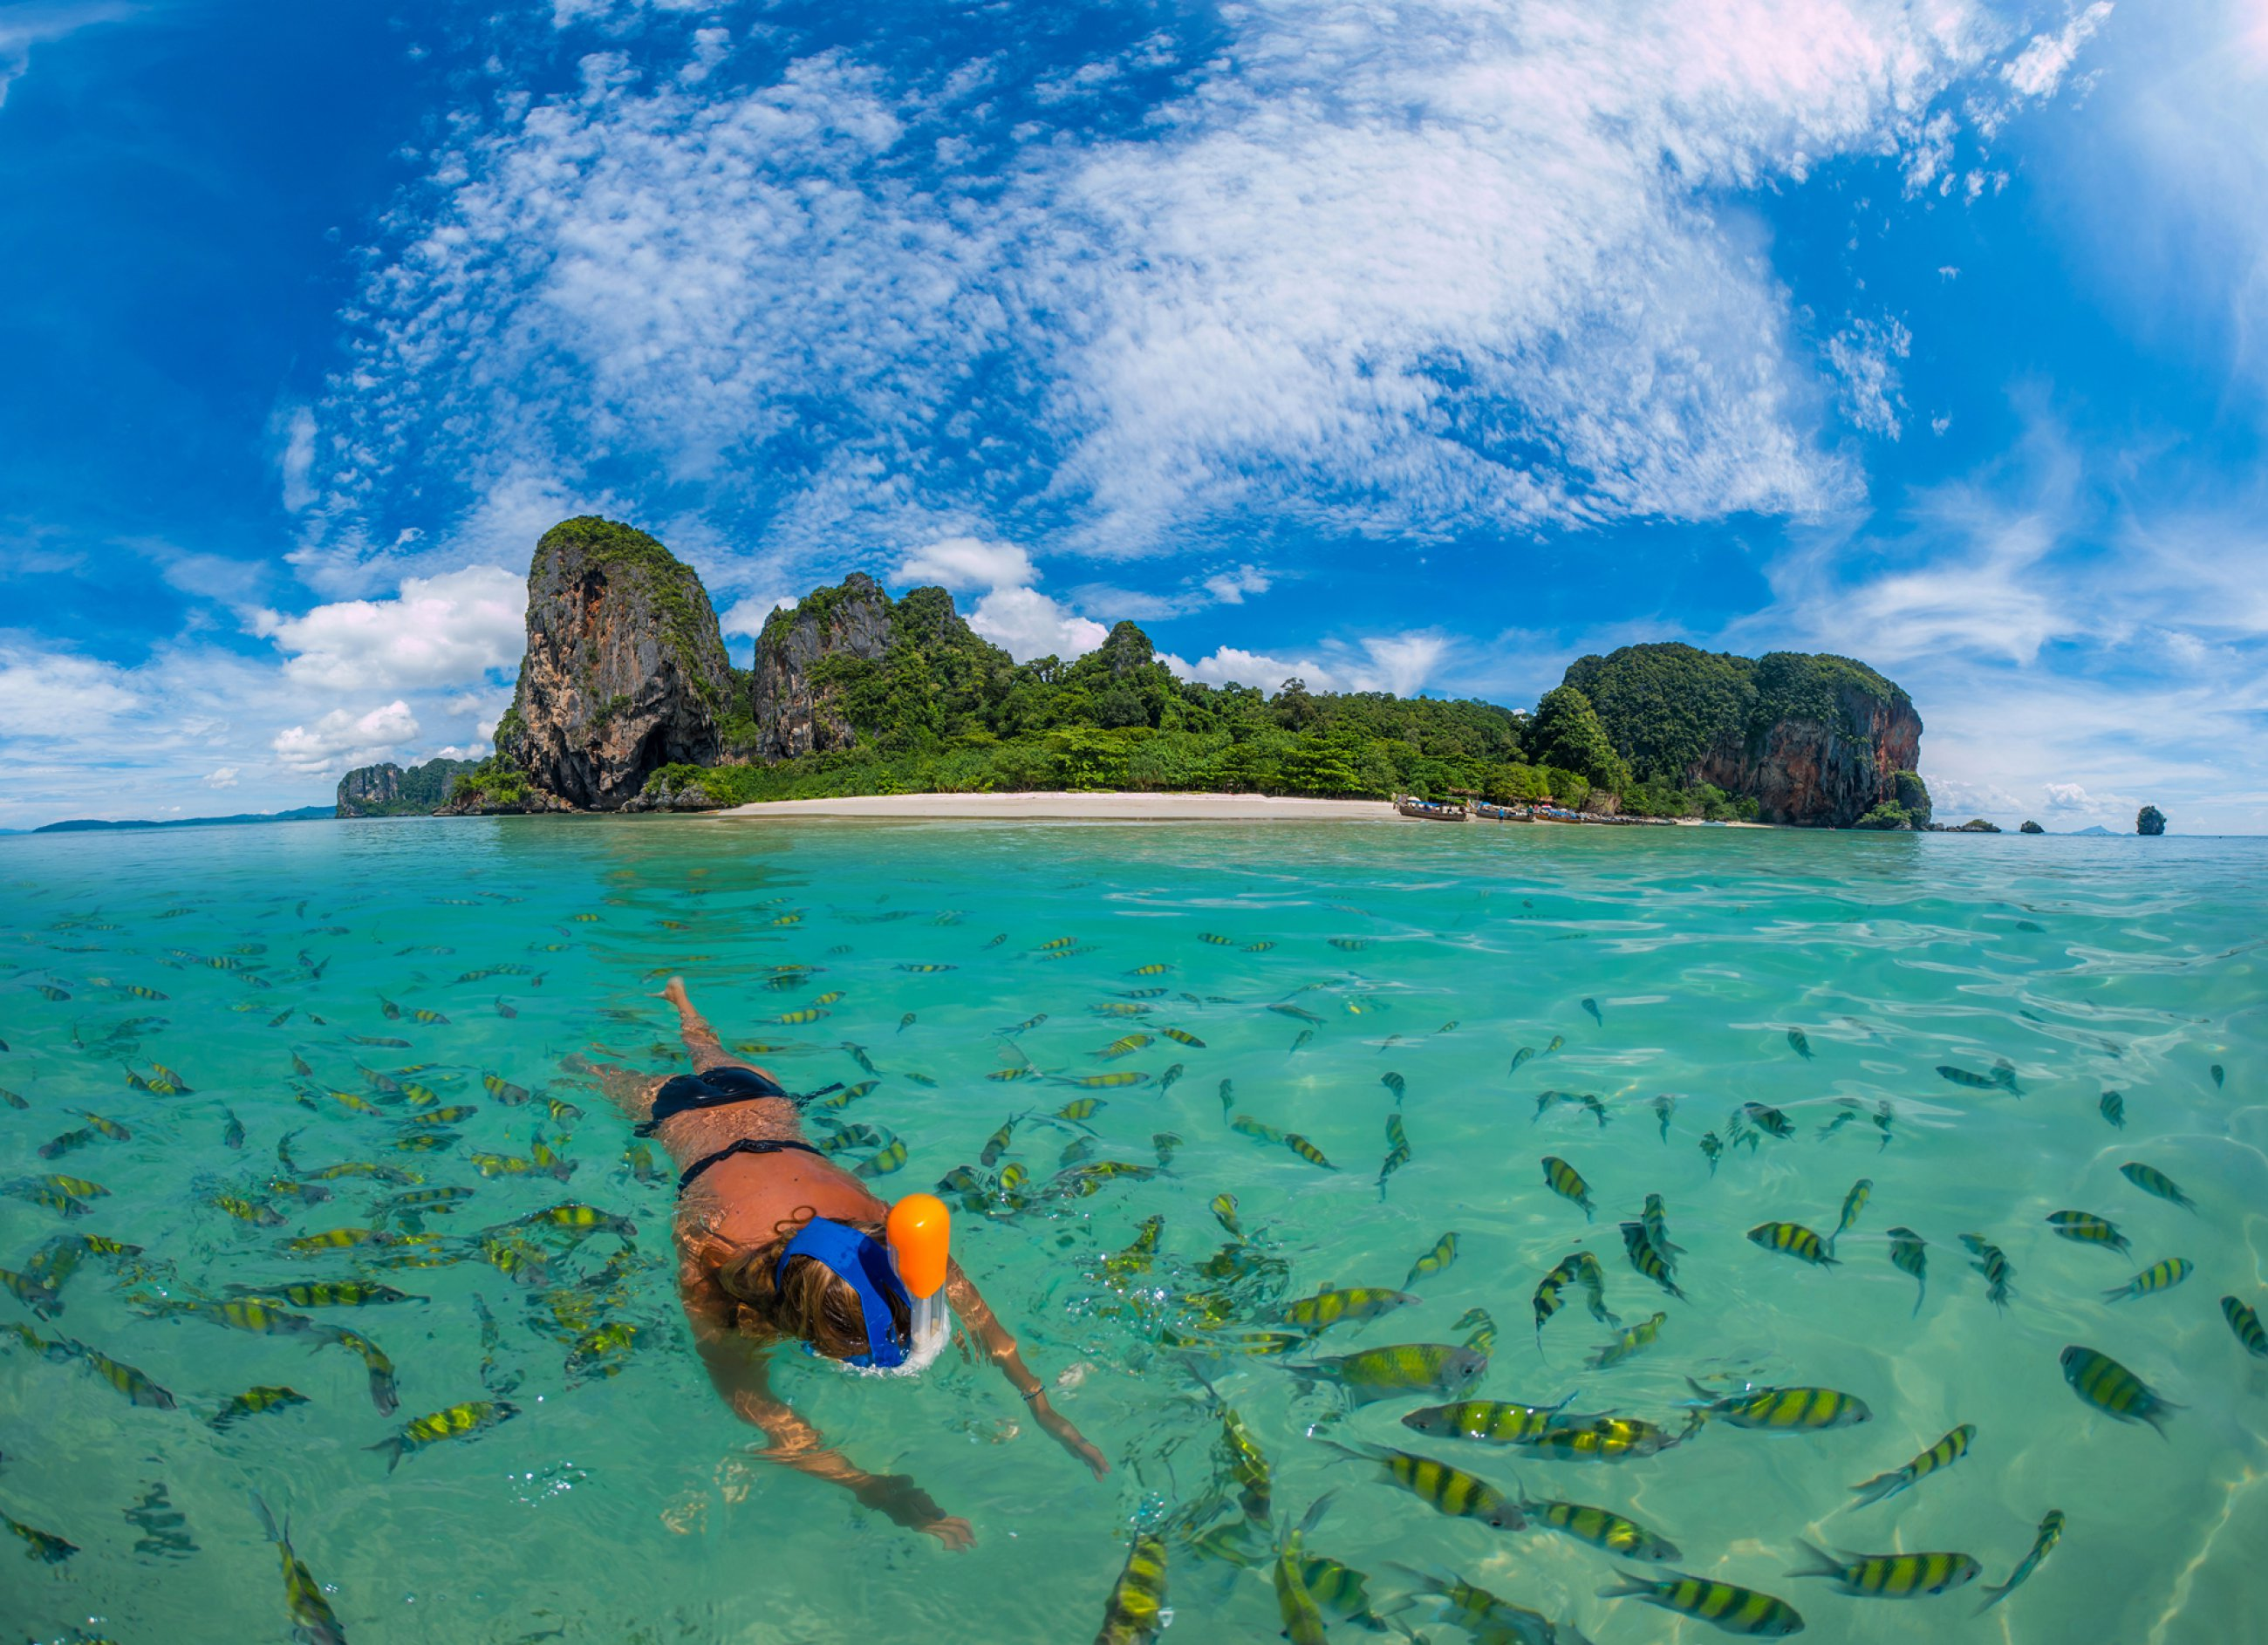 https://bubo.sk/uploads/galleries/5060/krabi-shutterstock-240888343.jpg